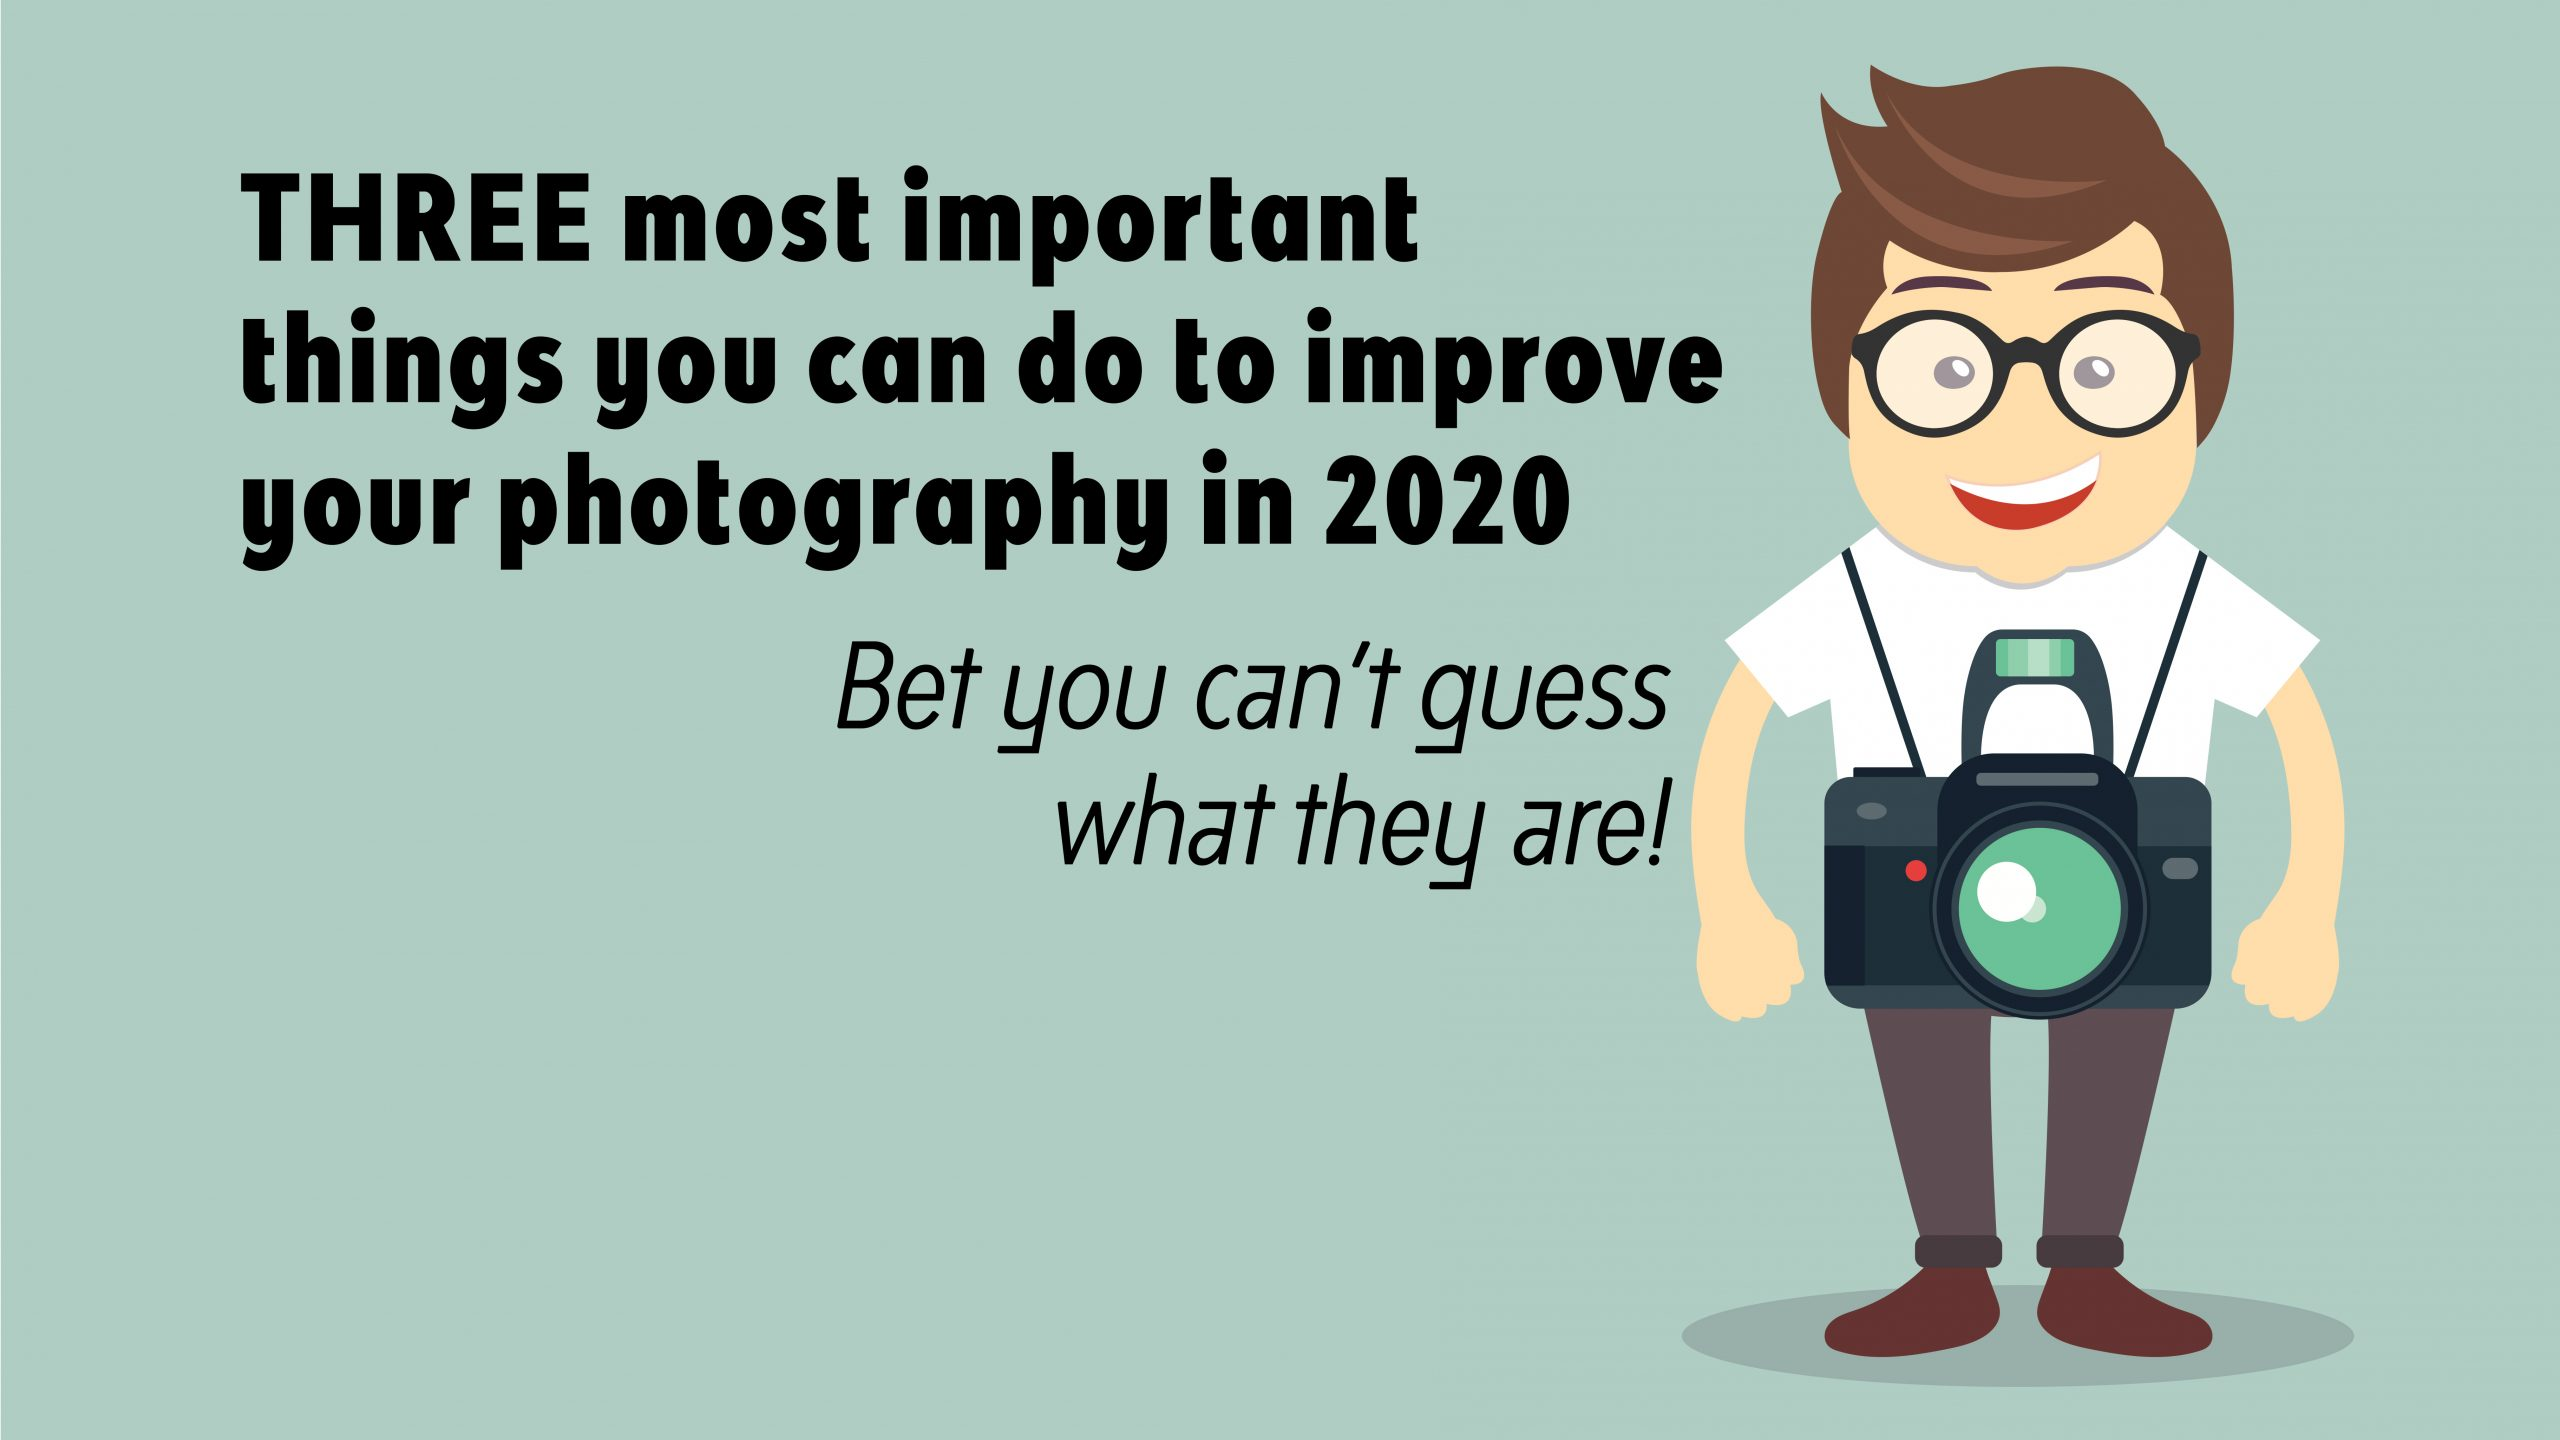 THREE most important things you can do to improve your photography in 2020